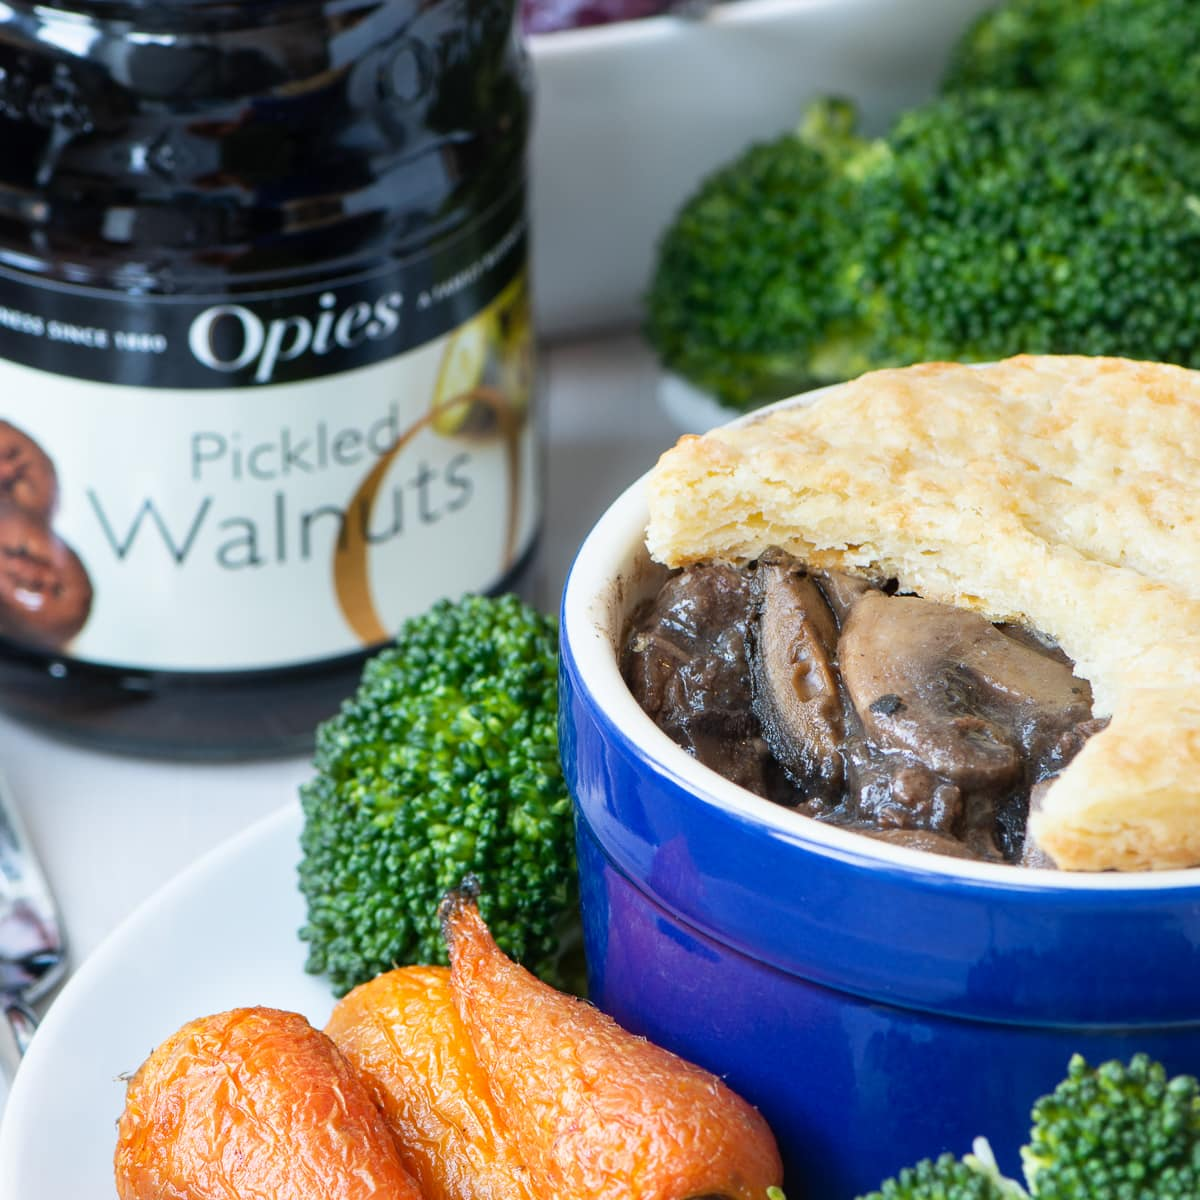 Beef and Pickled Walnut Pie – A rich and delicious beef, mushroom and pickled walnut pie topped with a homemade cheesy flaky pastry crust.